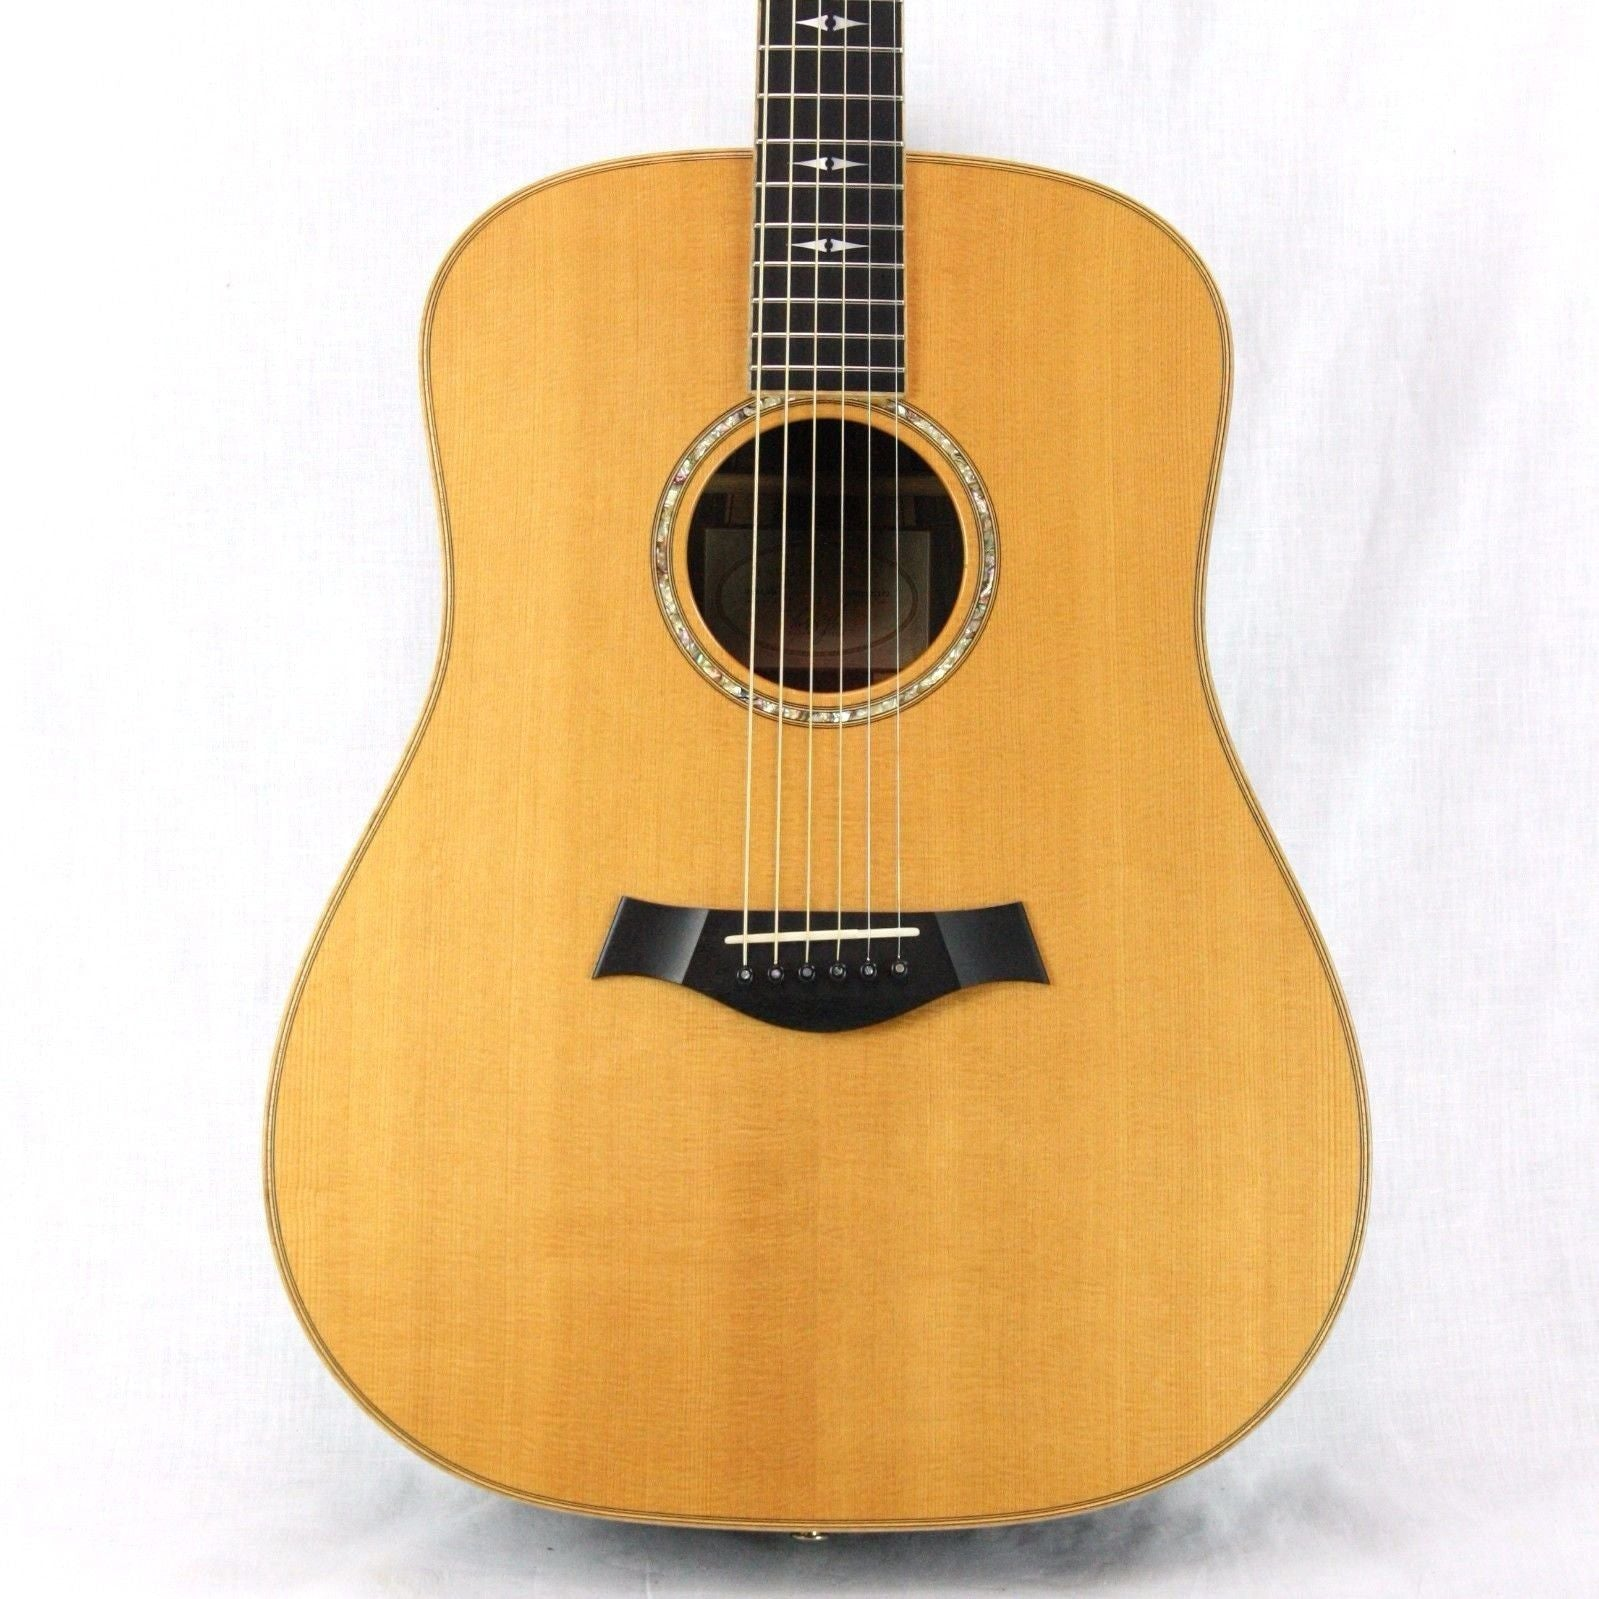 2002 Taylor 810 LTD Cocobolo! Spruce Top, Cocobolo Back/Sides, Advanced Bracing!